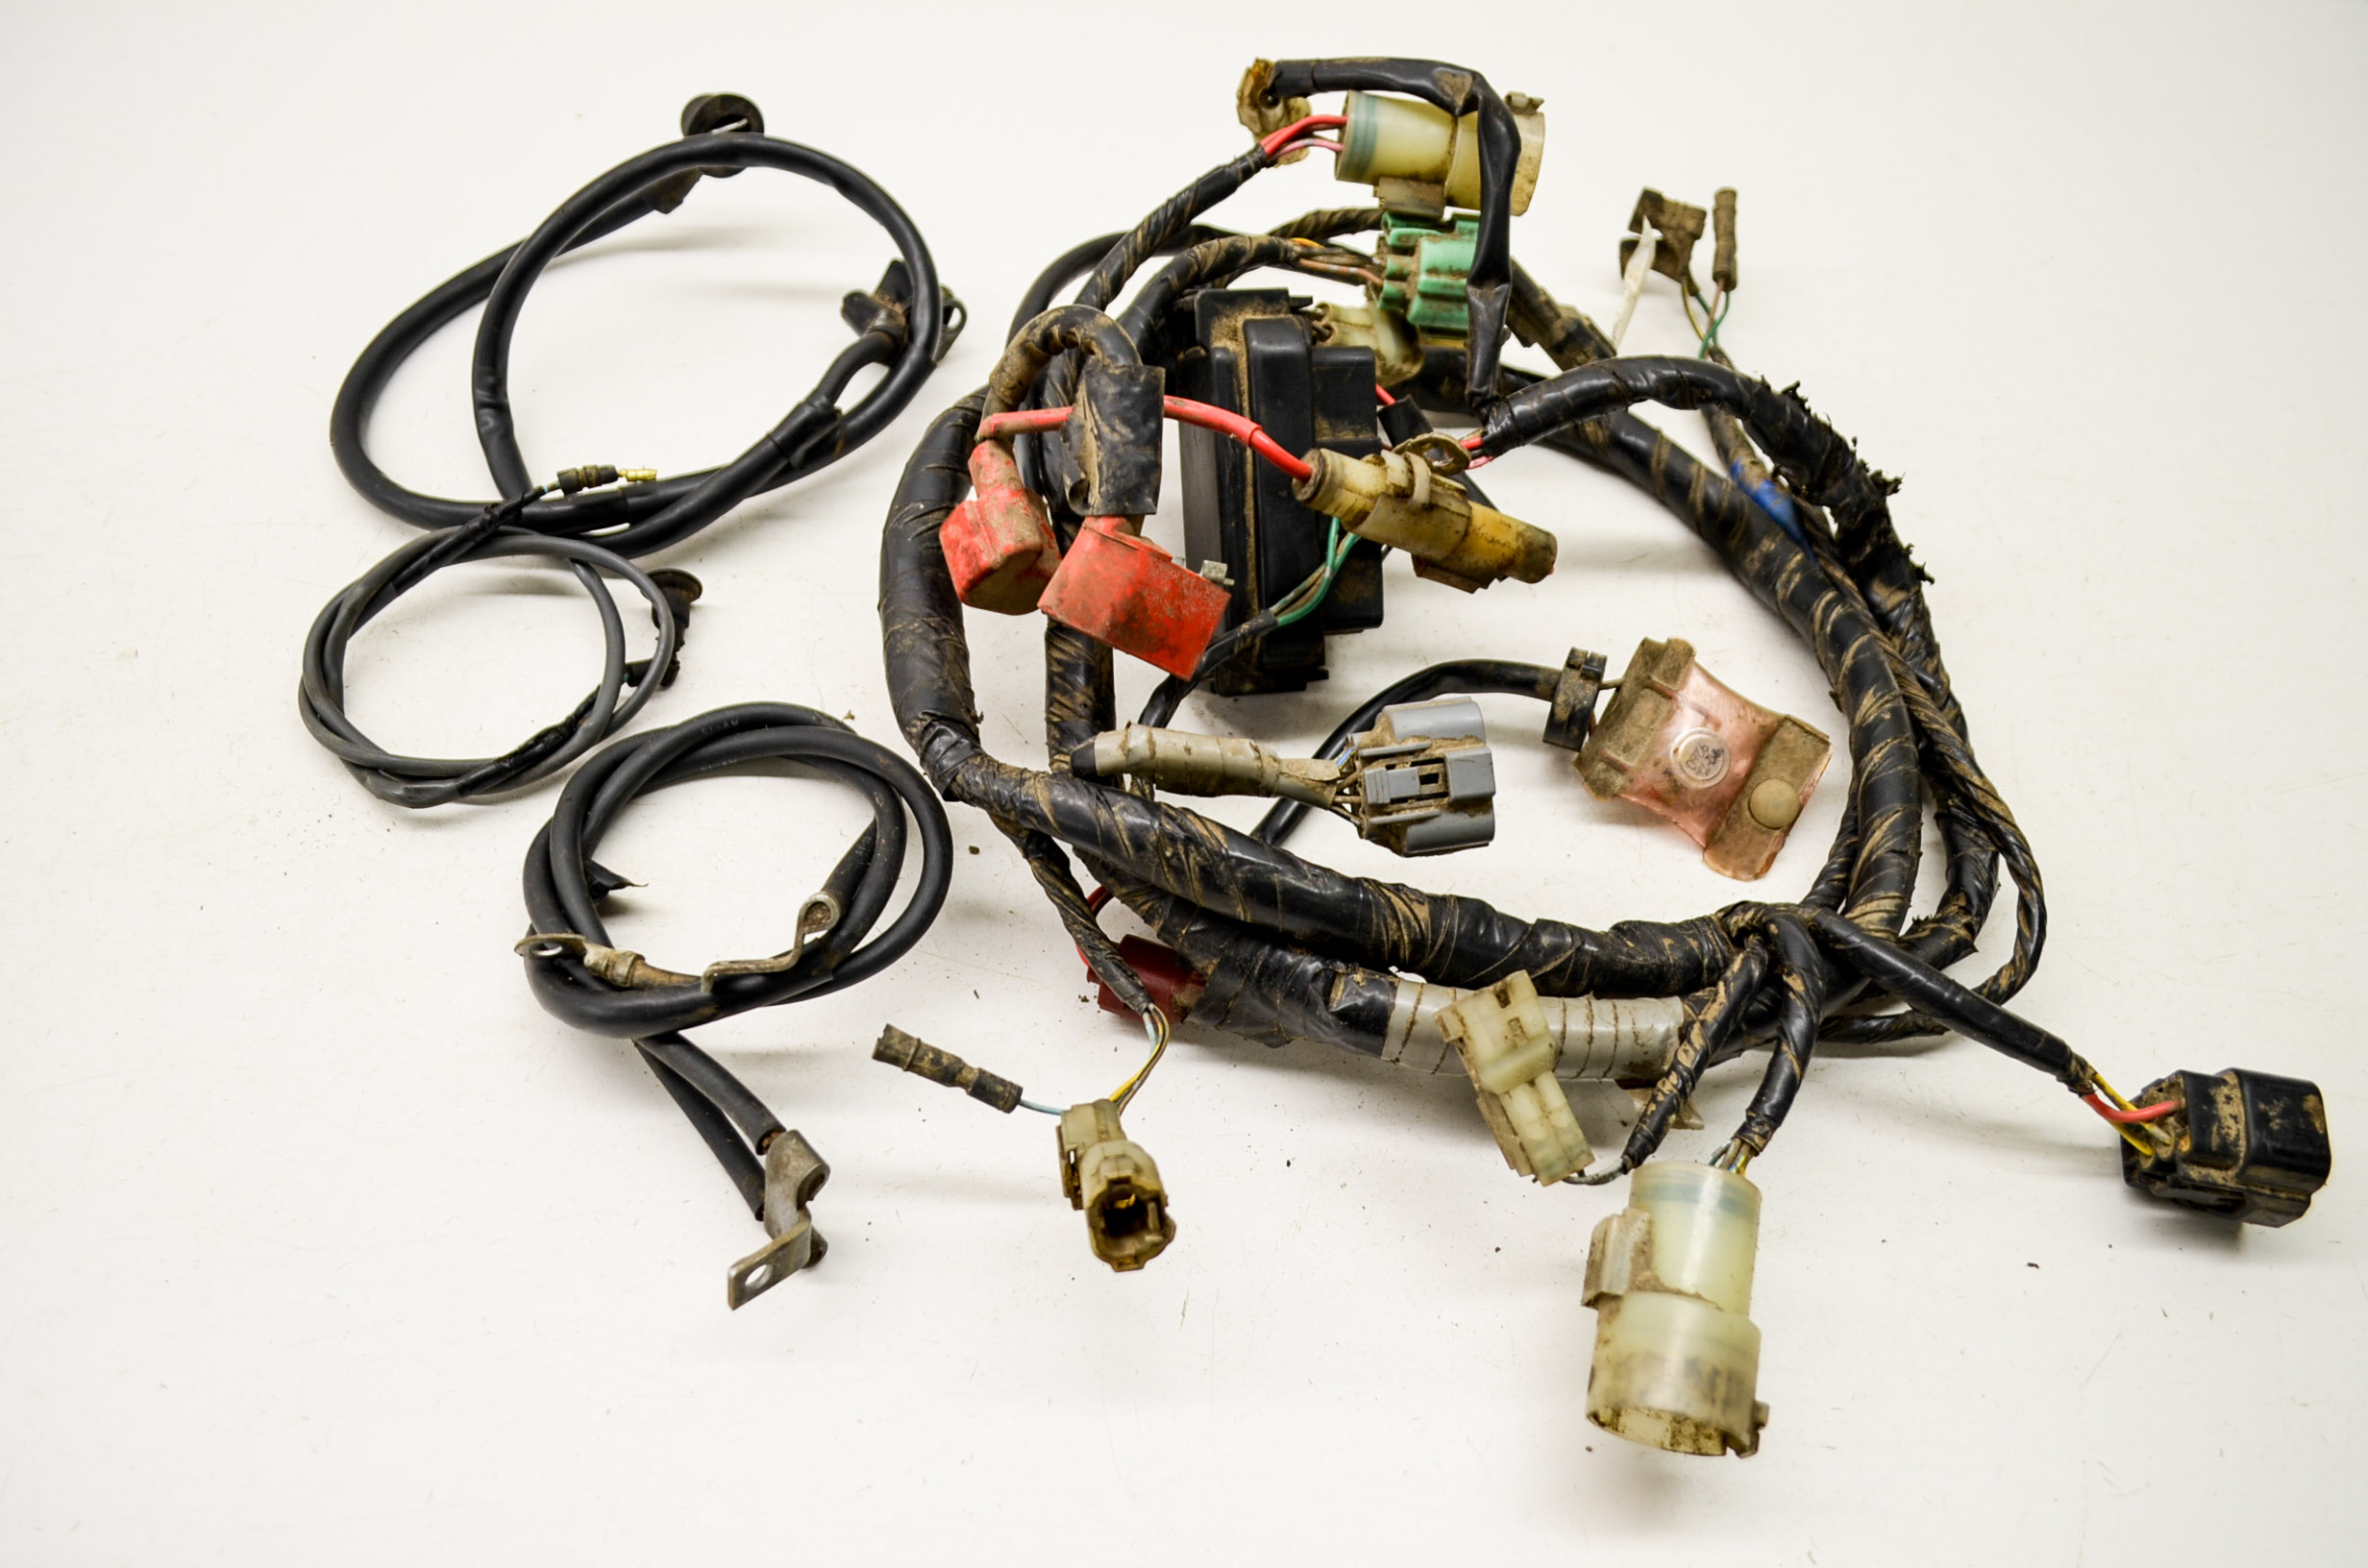 Wiring Harness For Honda Rancher : Honda rancher wire harness electrical wiring